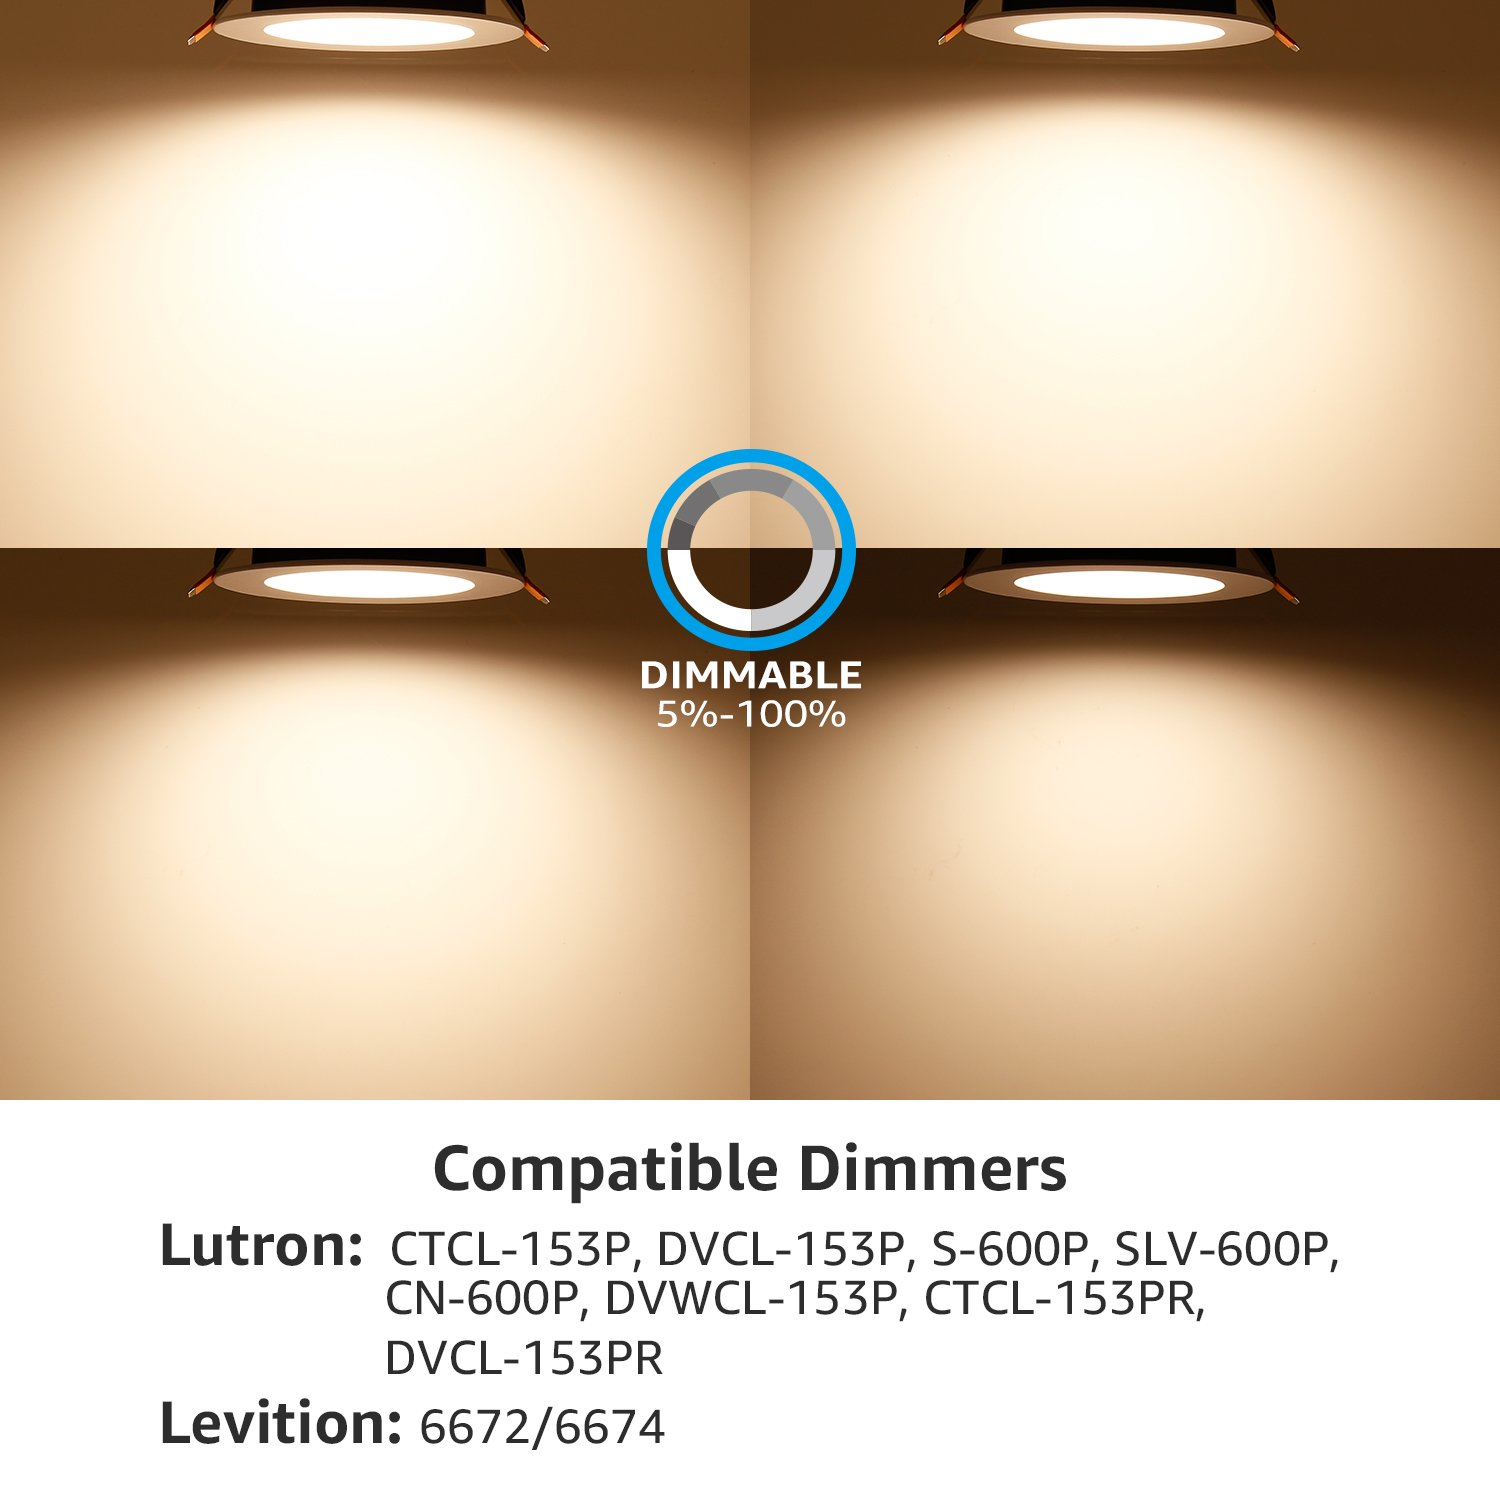 "TORCHSTAR 12W 4"" Slim Recessed Ceiling Light with Junction Box, Dimmable Can Killer, IC Rated Airtight Downlight, 90W Equiv, ETL & Energy Star Certified, 3000K Warm White by TORCHSTAR (Image #5)"